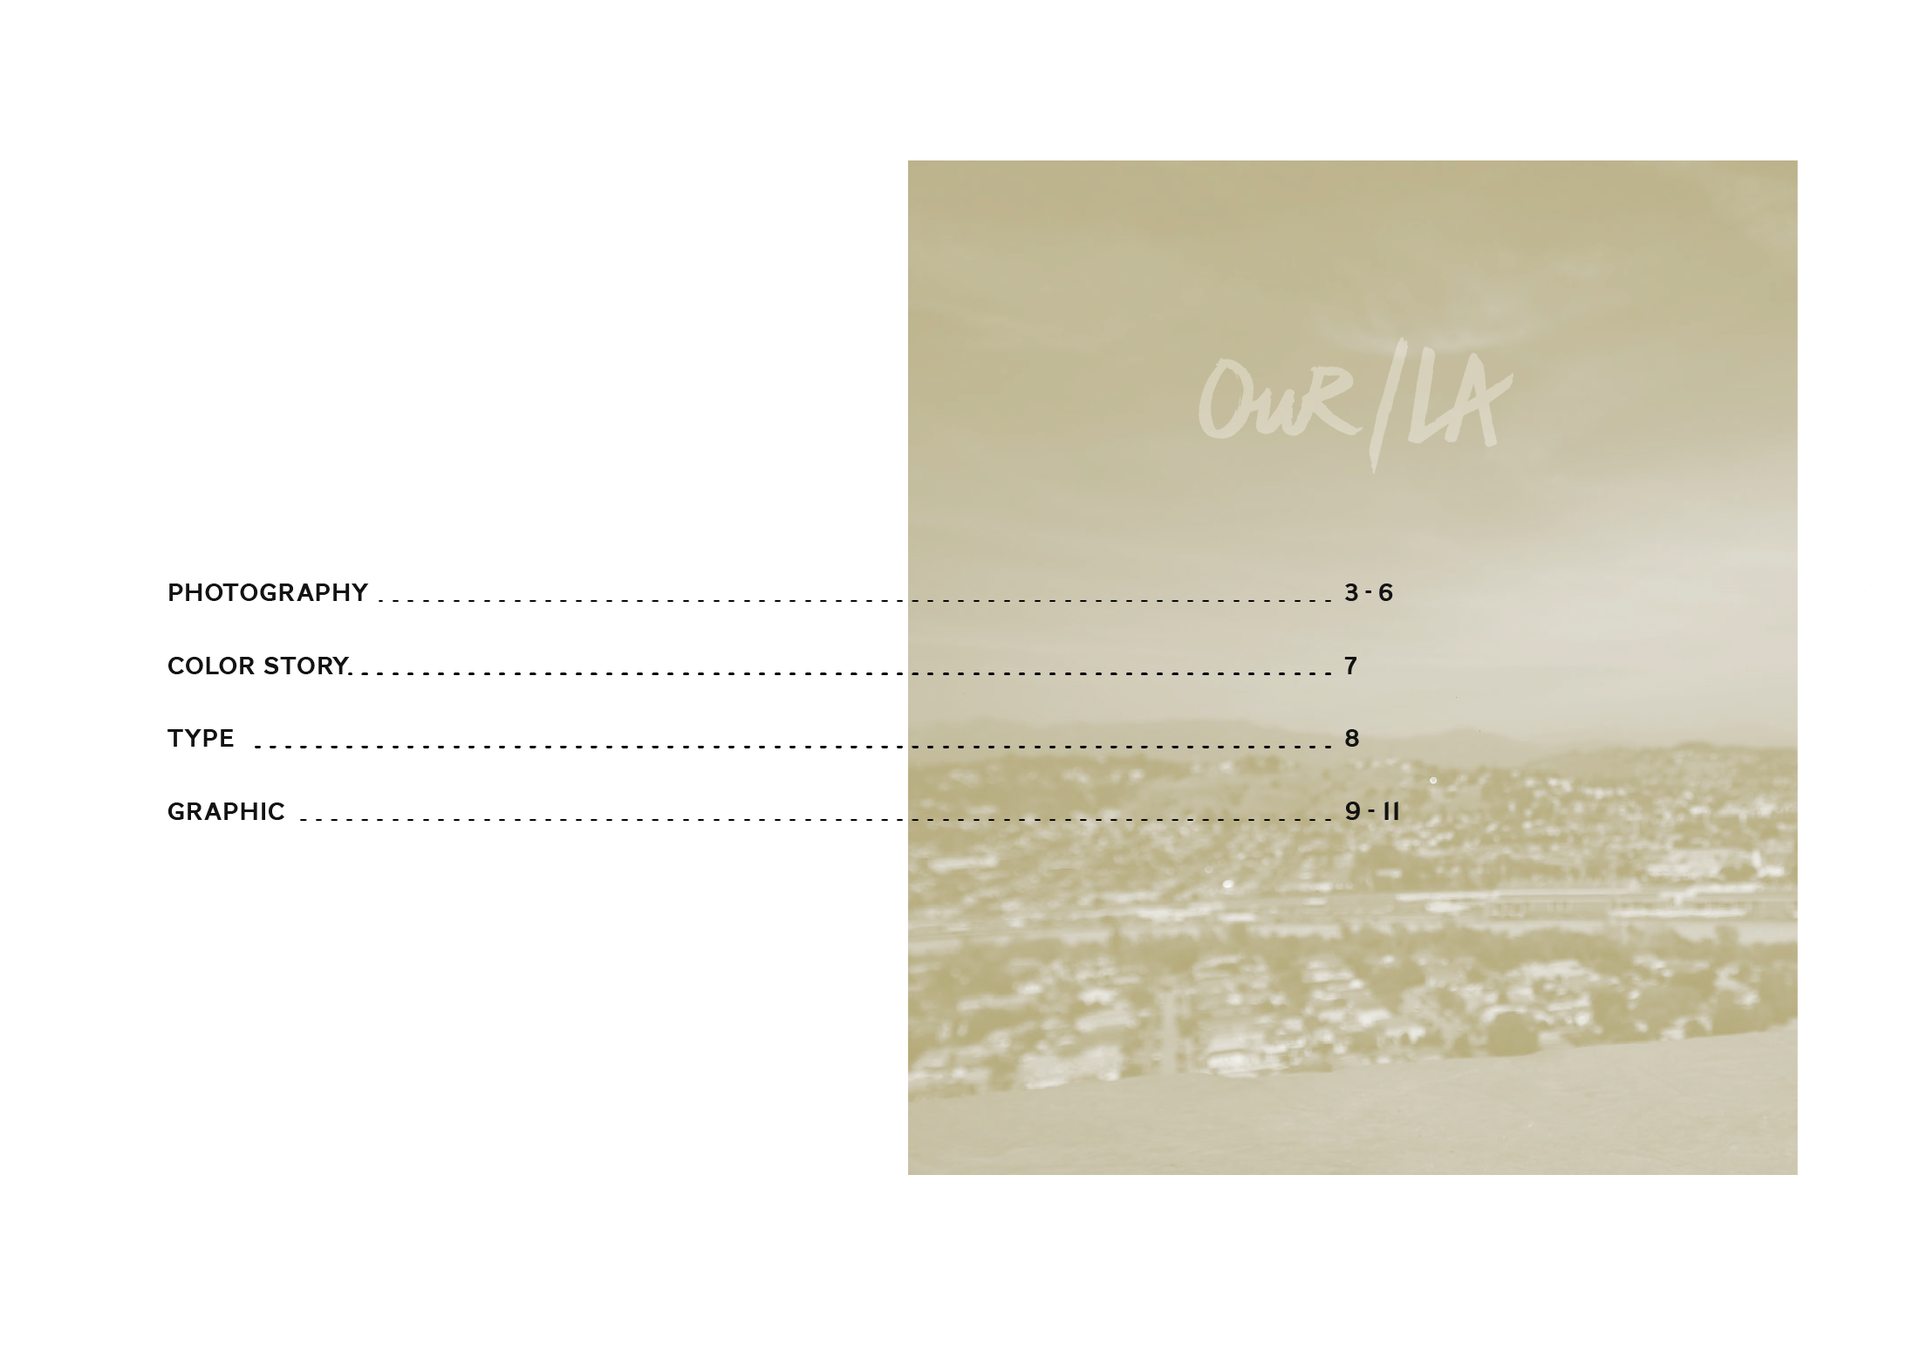 Our Los Angeles Brand Book 0319-02.png